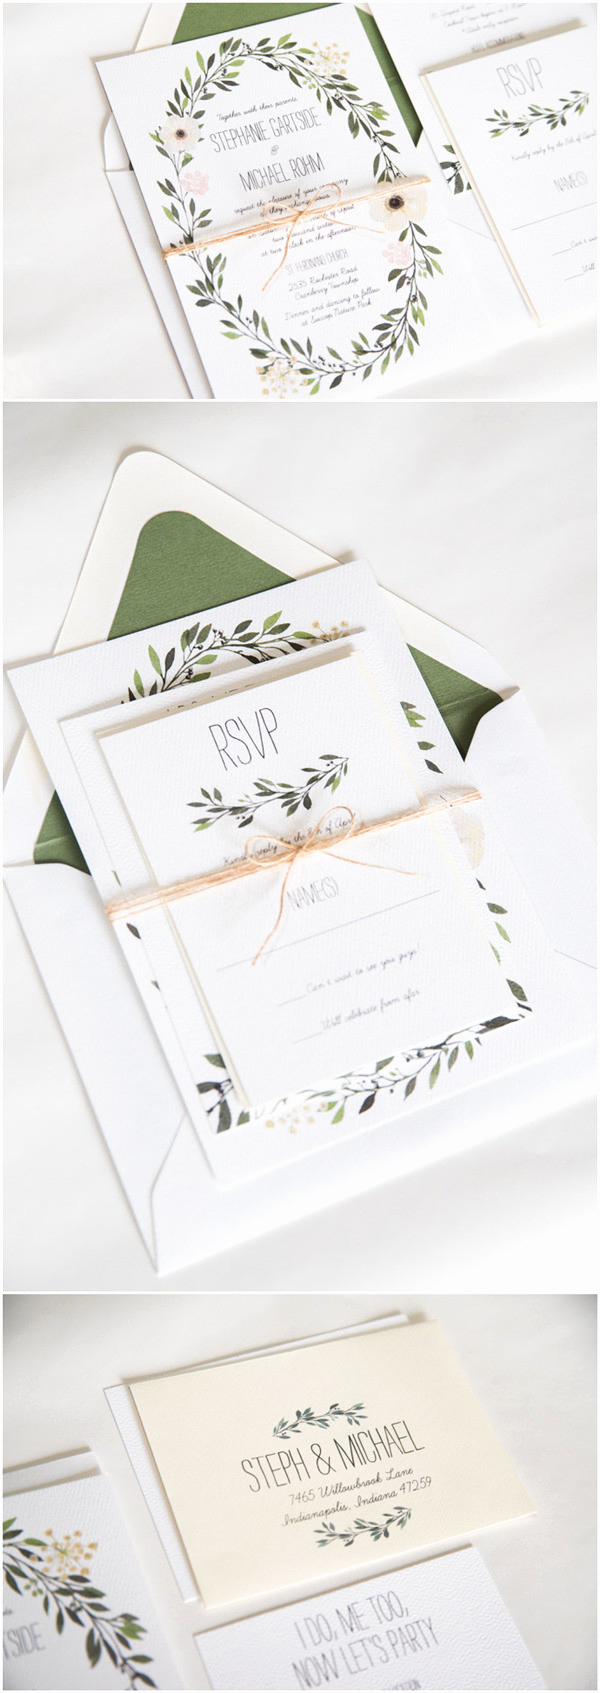 Wedding Invitation Trends 2017 Beautiful 2017 Wedding Trends 30 Botanical Ideas to Decorate Your